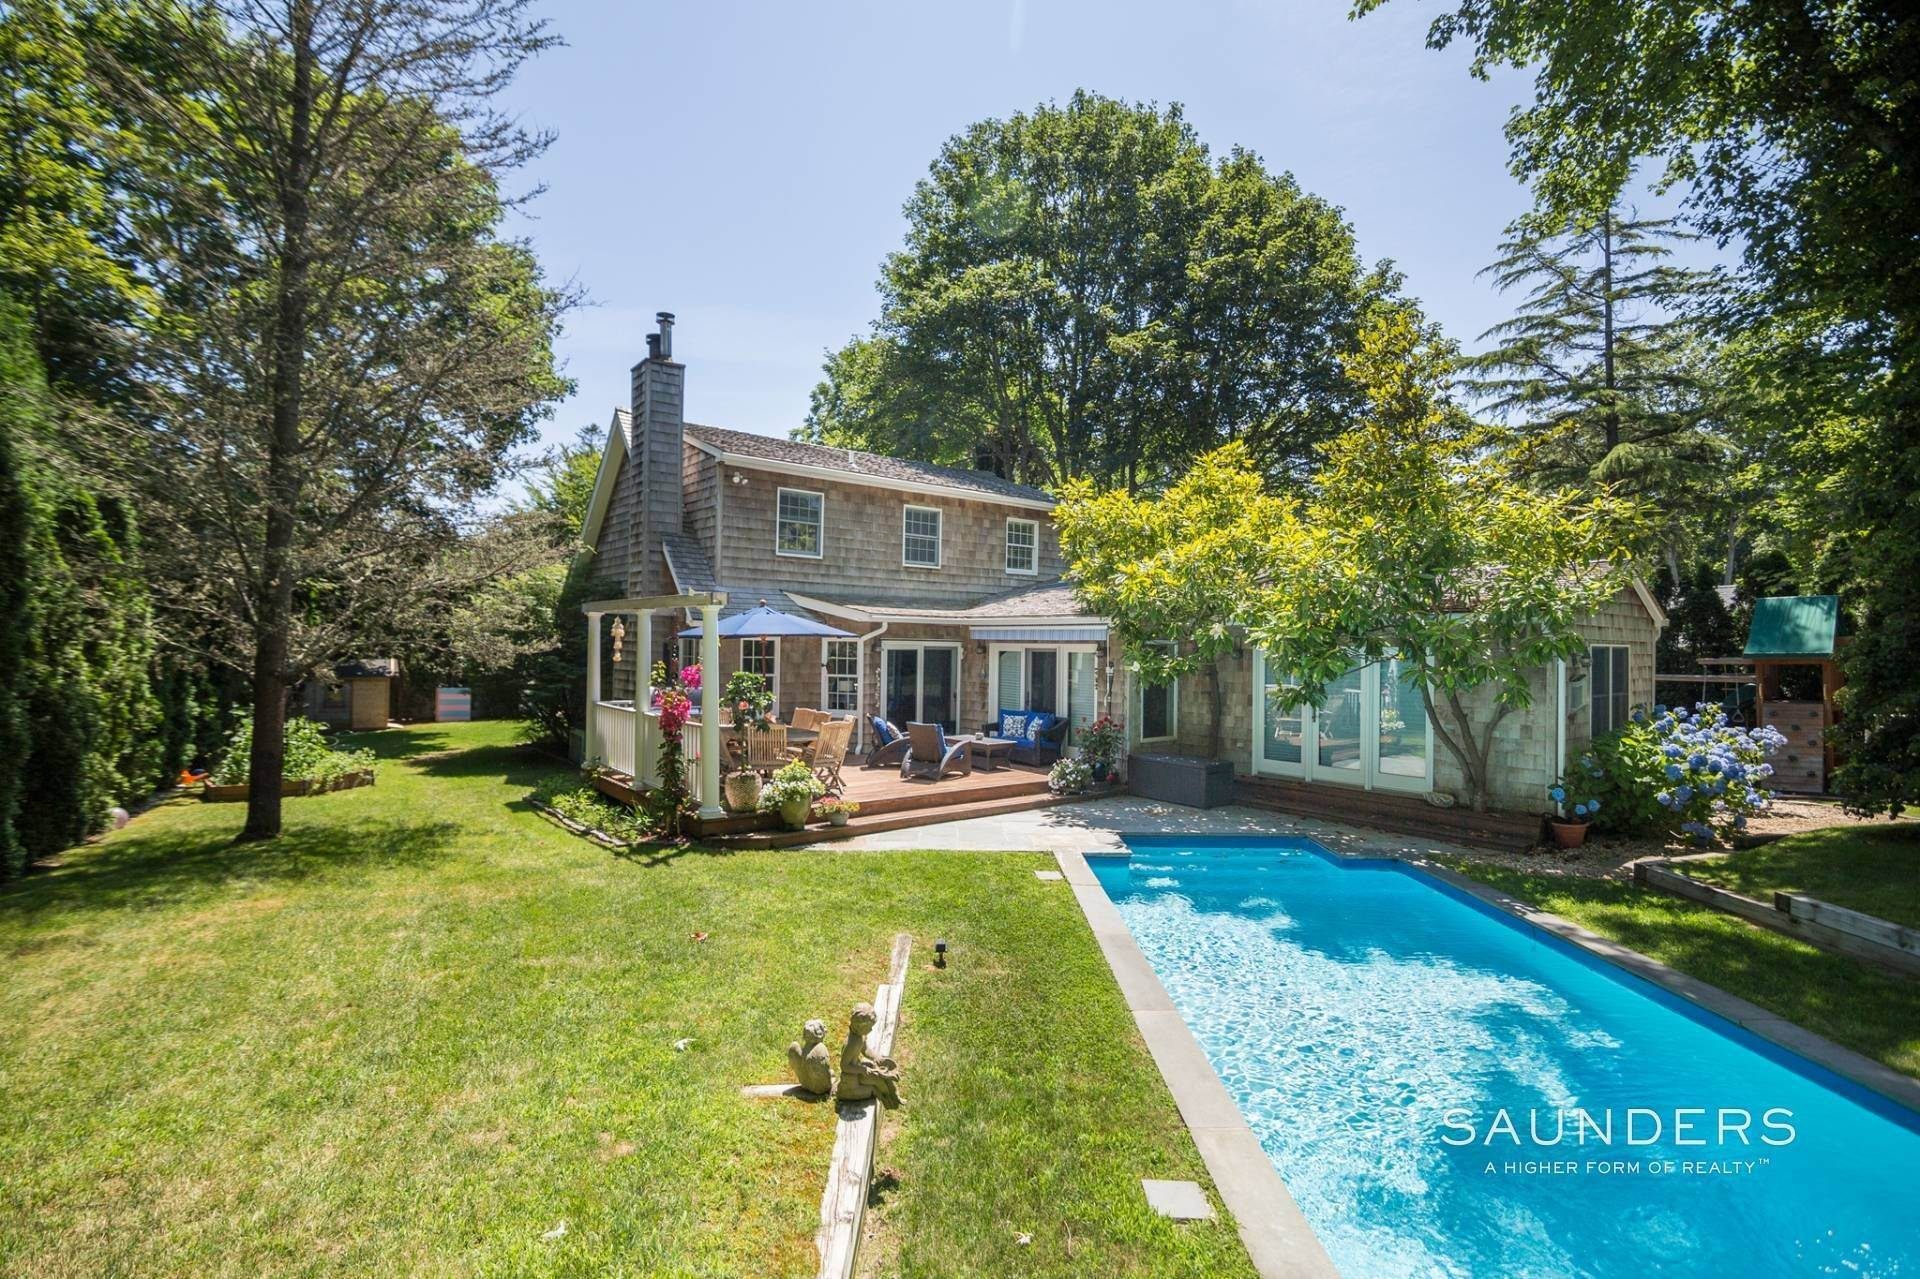 Single Family Homes for Sale at Once Upon A Time, In East Hampton Village... 156 Montauk Highway, East Hampton, East Hampton Town, NY 11937